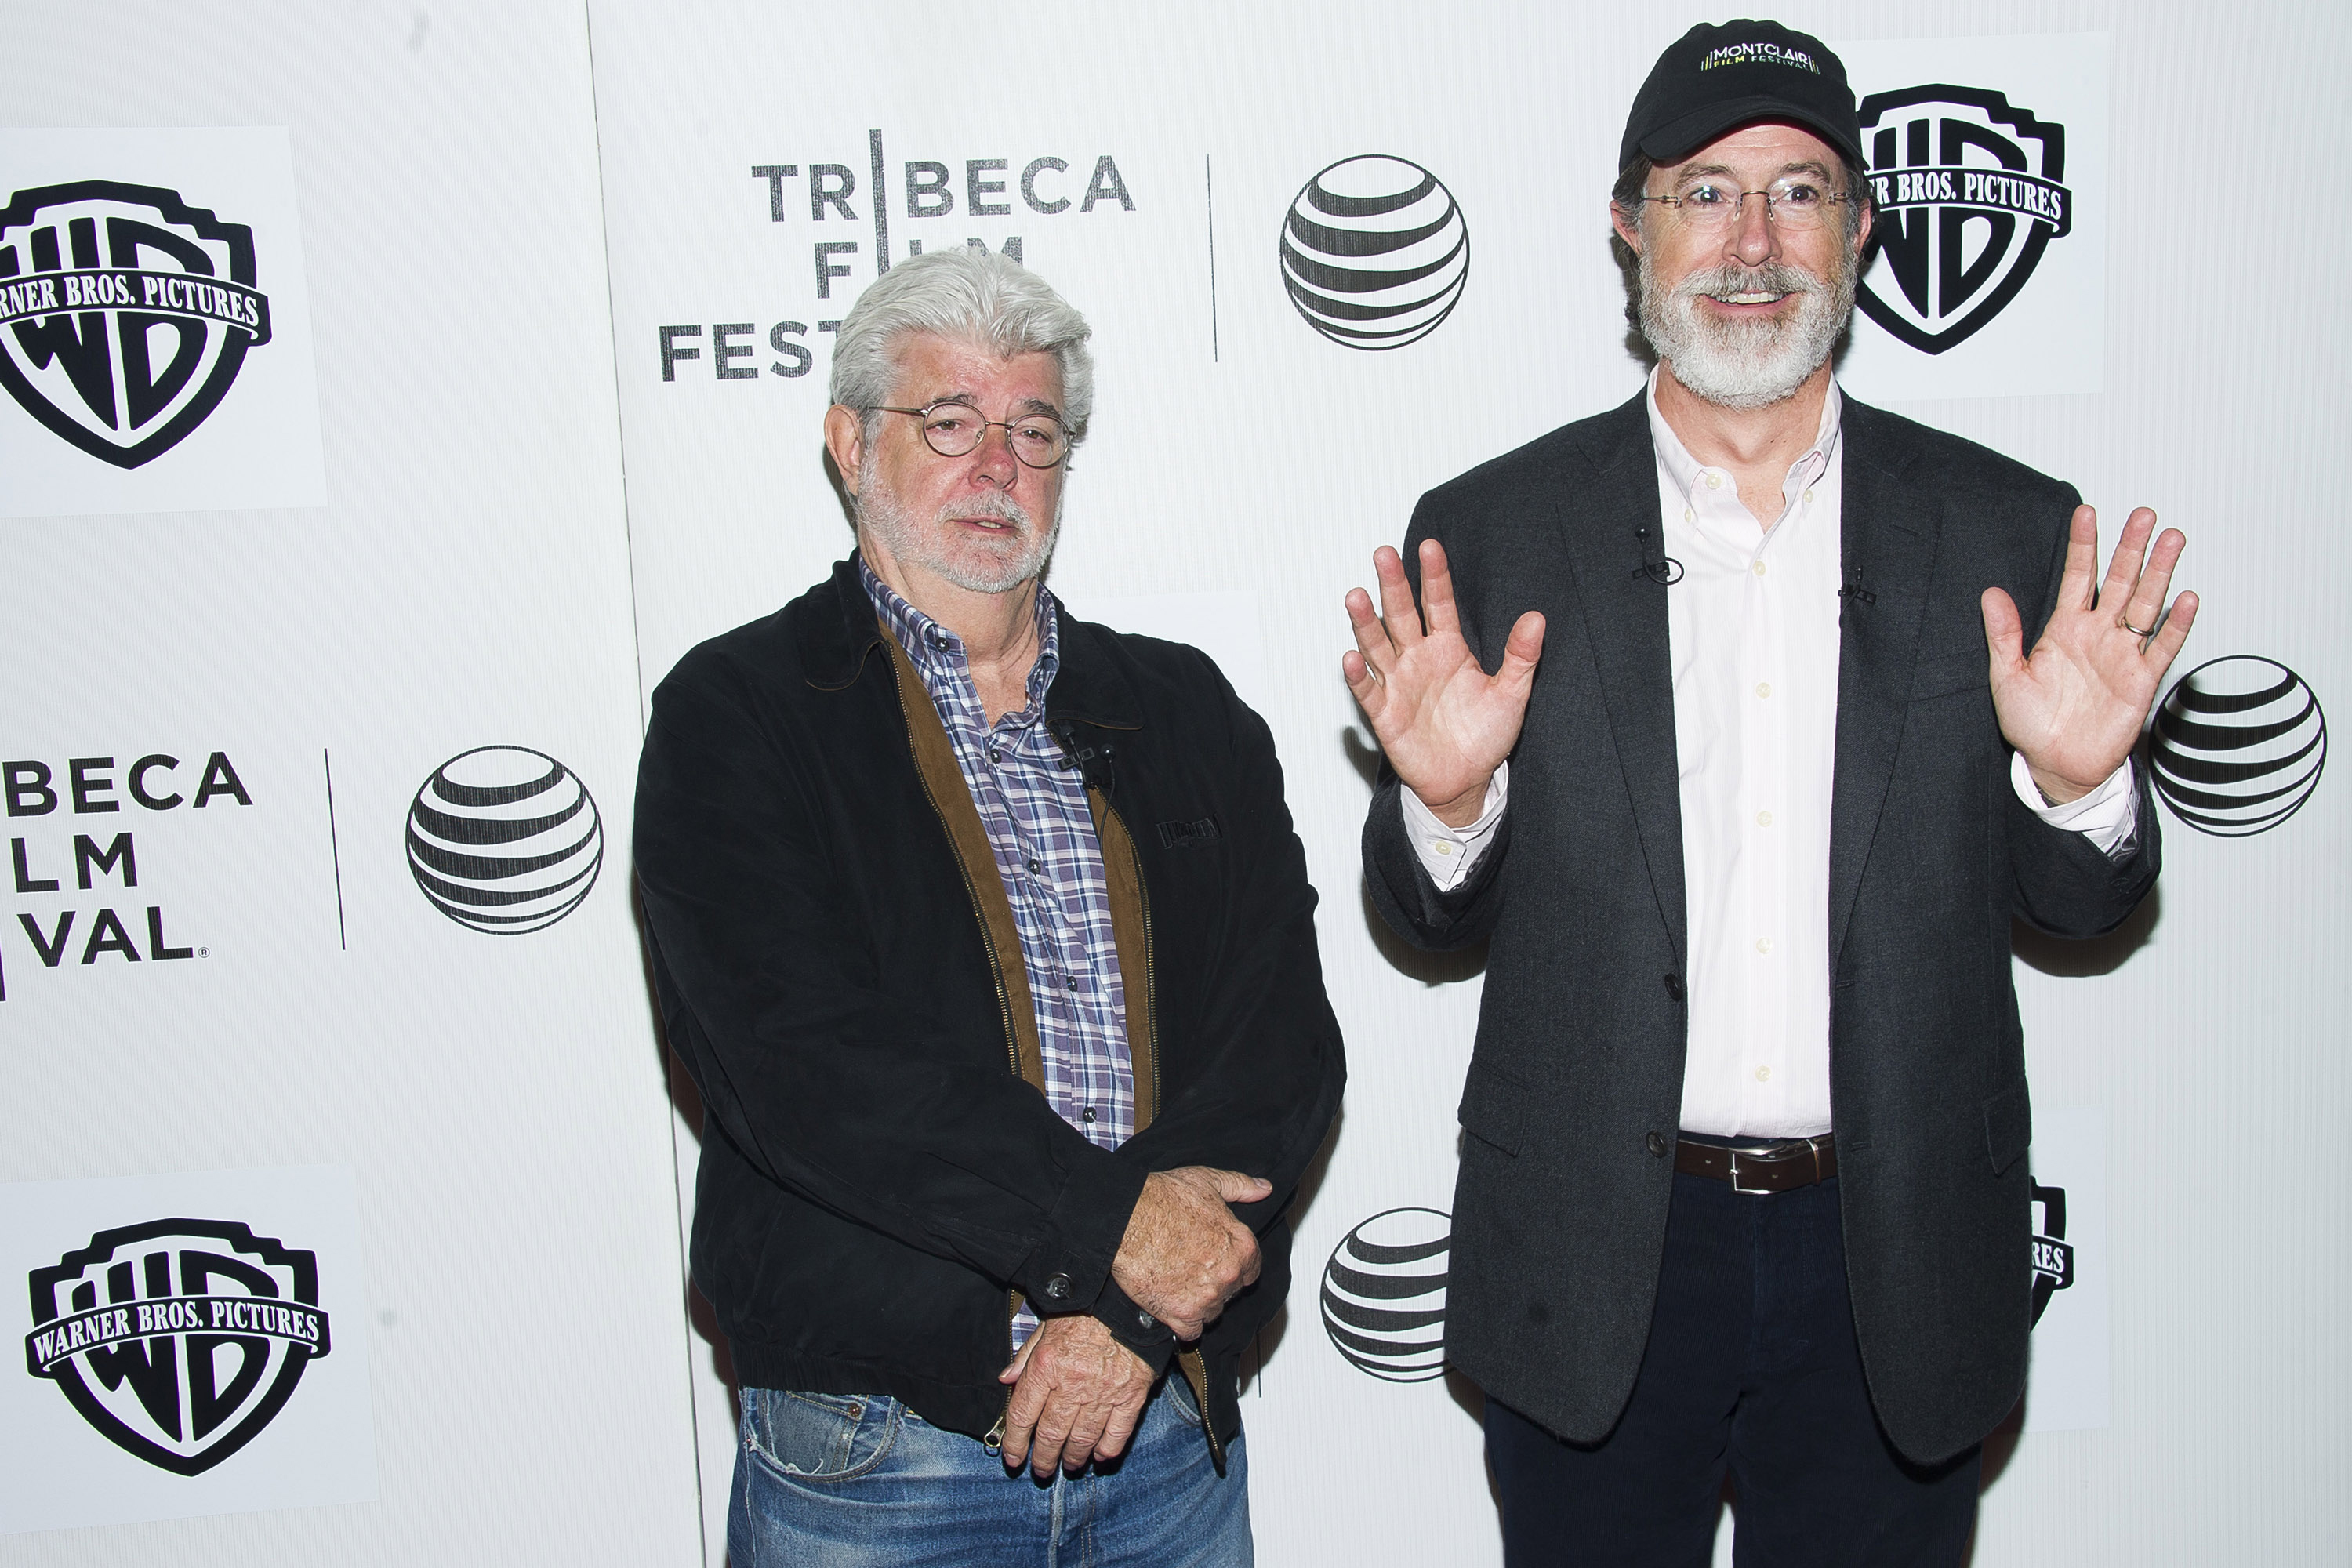 George Lucas, left, and Stephen Colbert attend the Tribeca Talks: Director Series during the Tribeca Film Festival at the BMCC Tribeca Performing Arts Center on April 17, 2015, in New York.